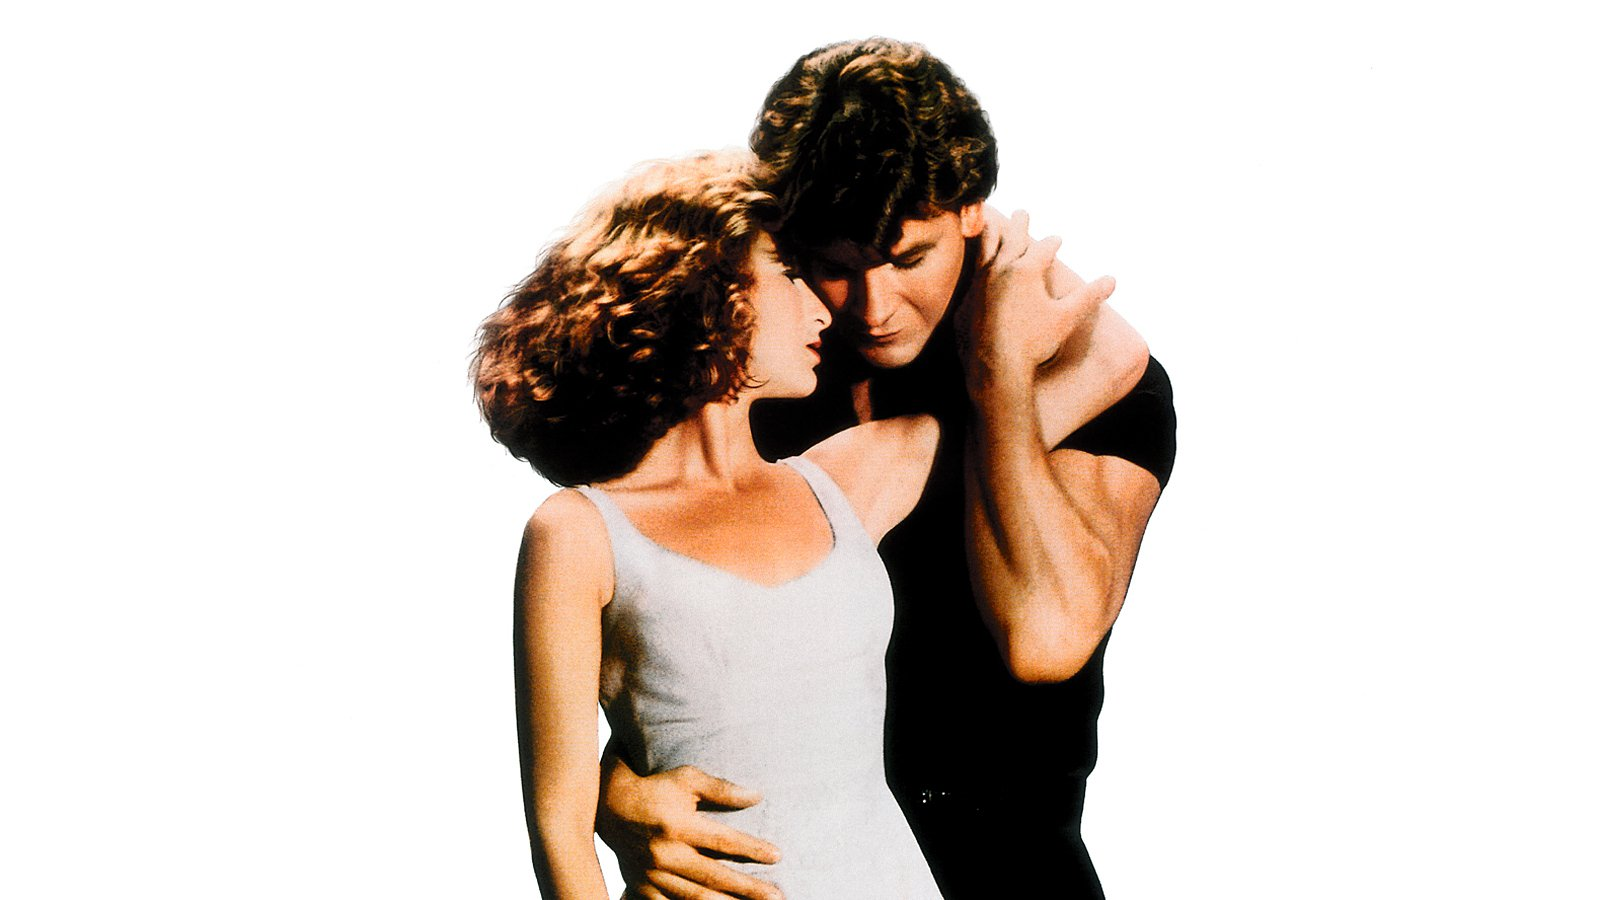 dirty-dancing-jennifer-grey-patrick-swayze.jpg